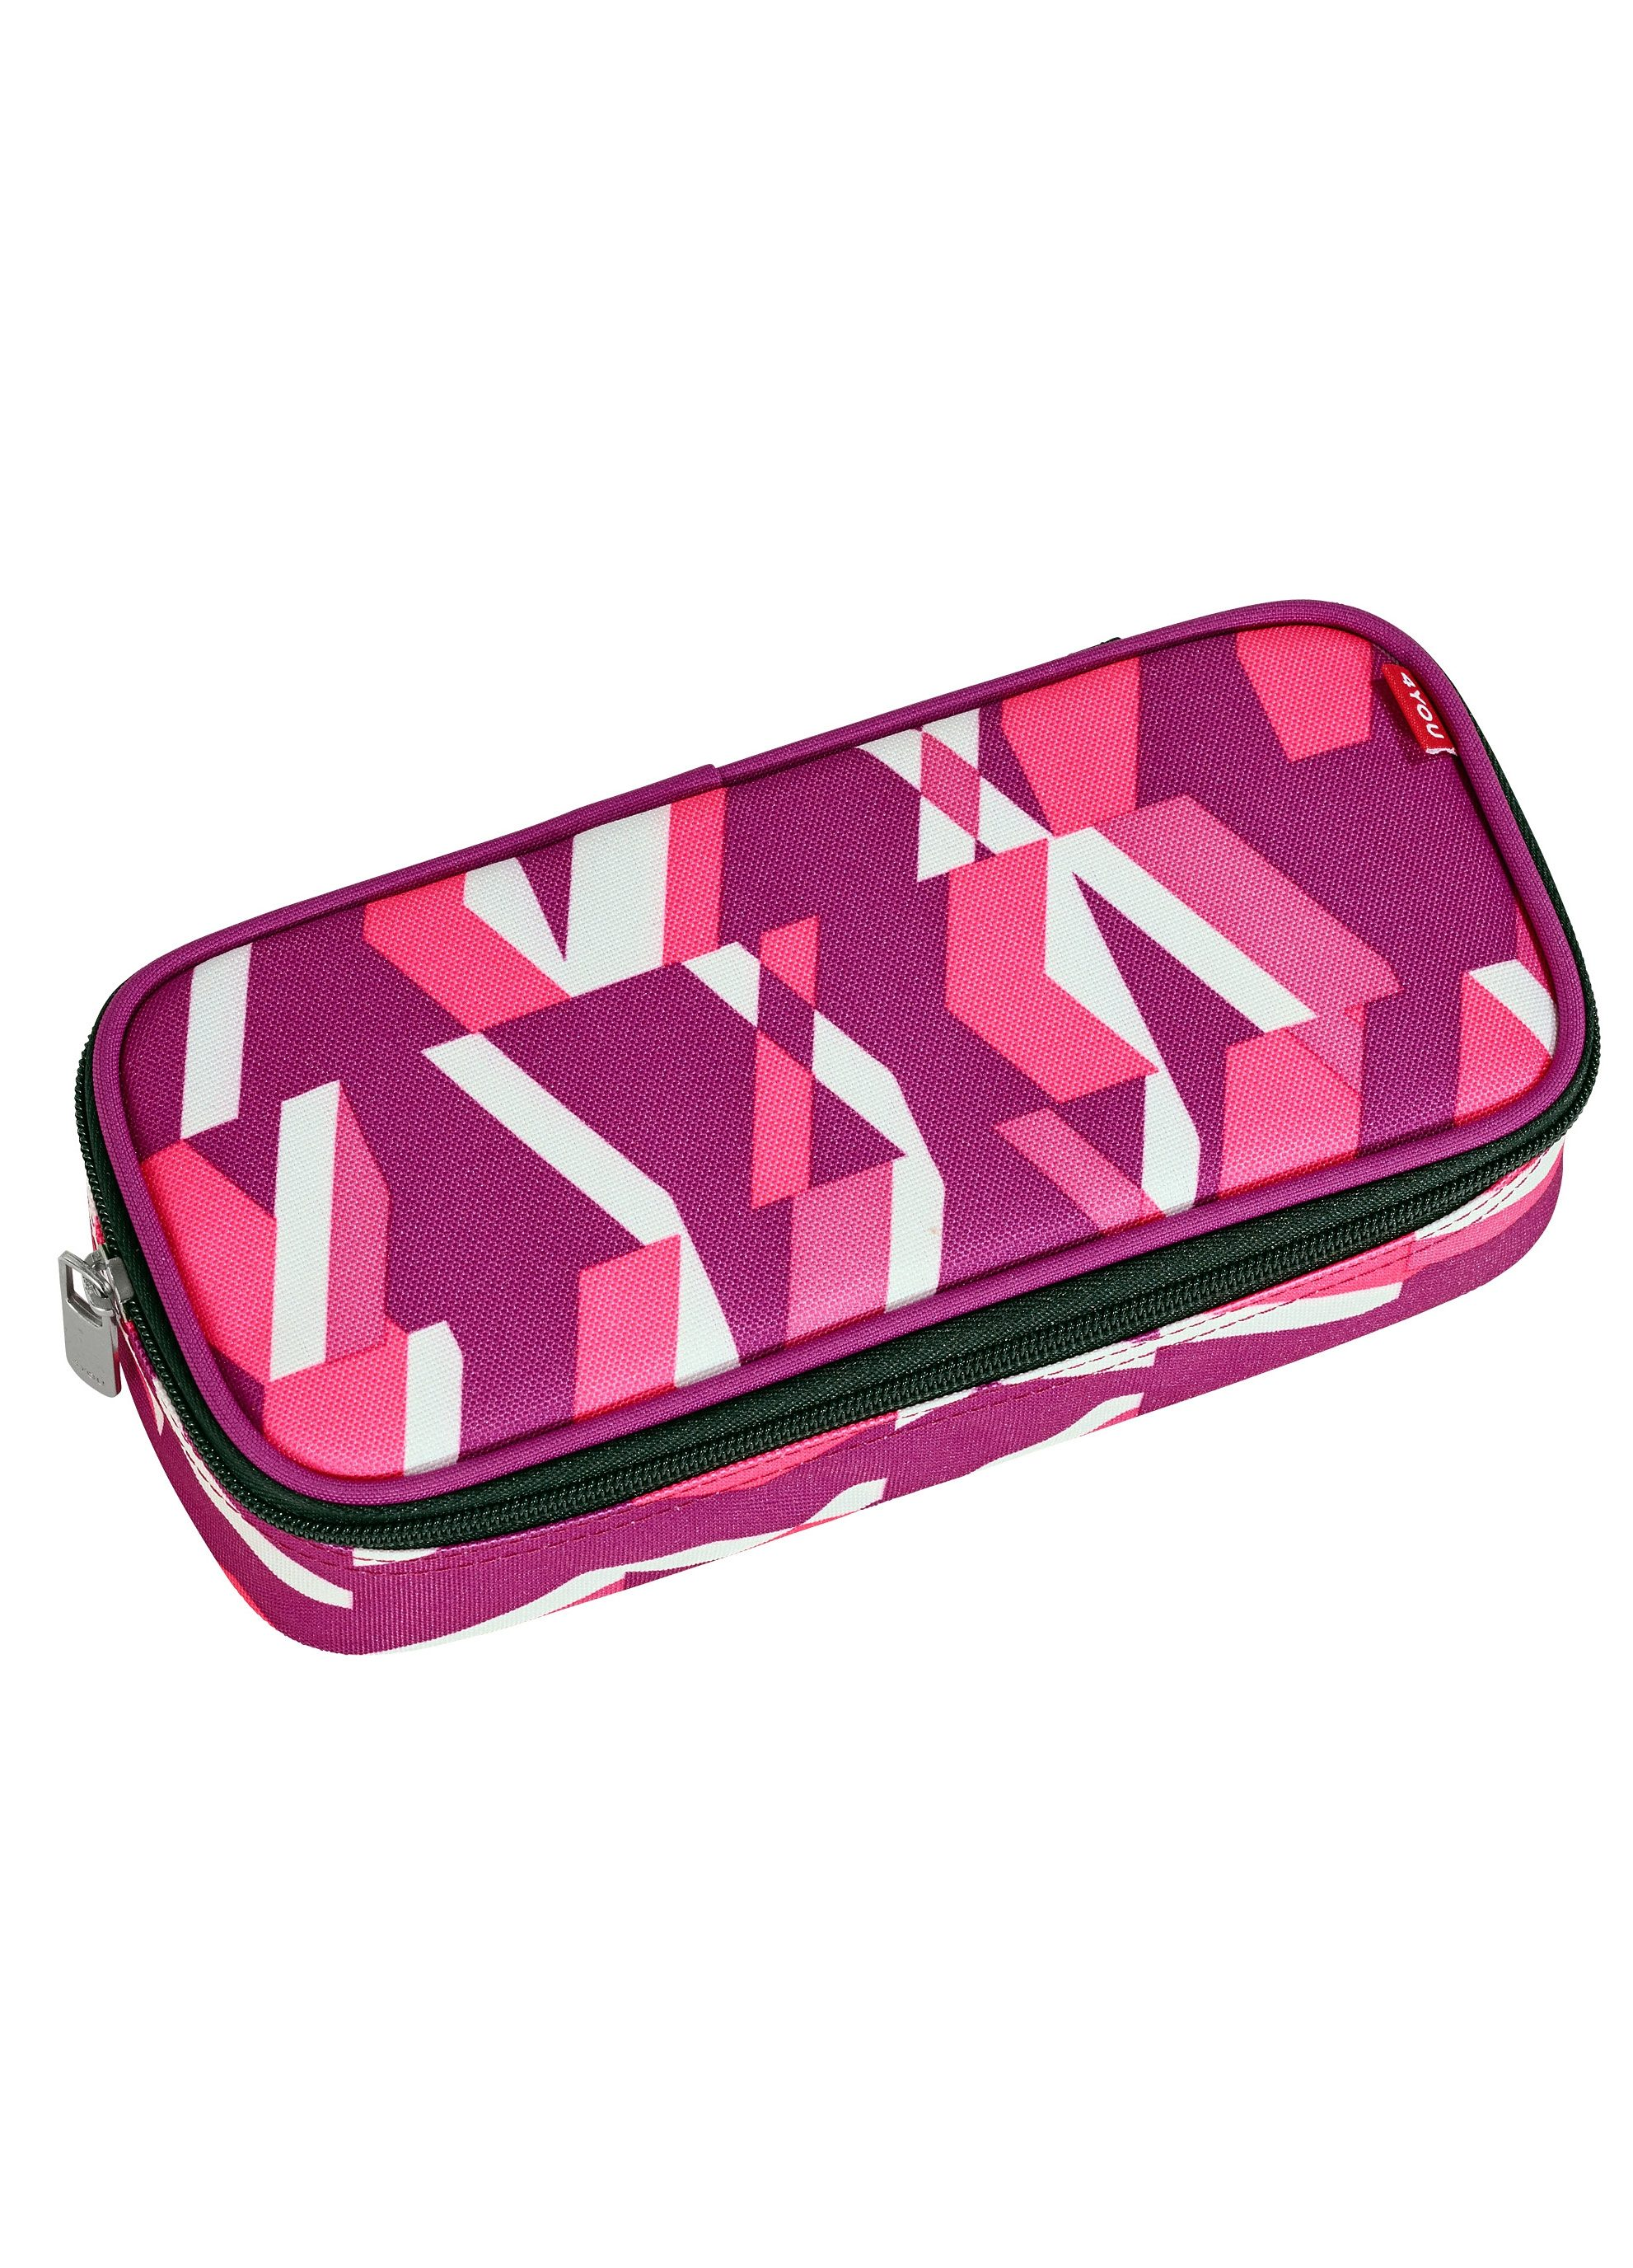 4YOU Mäppchen mit Geodreieck®, Chequer Pink, »Pencil Case«